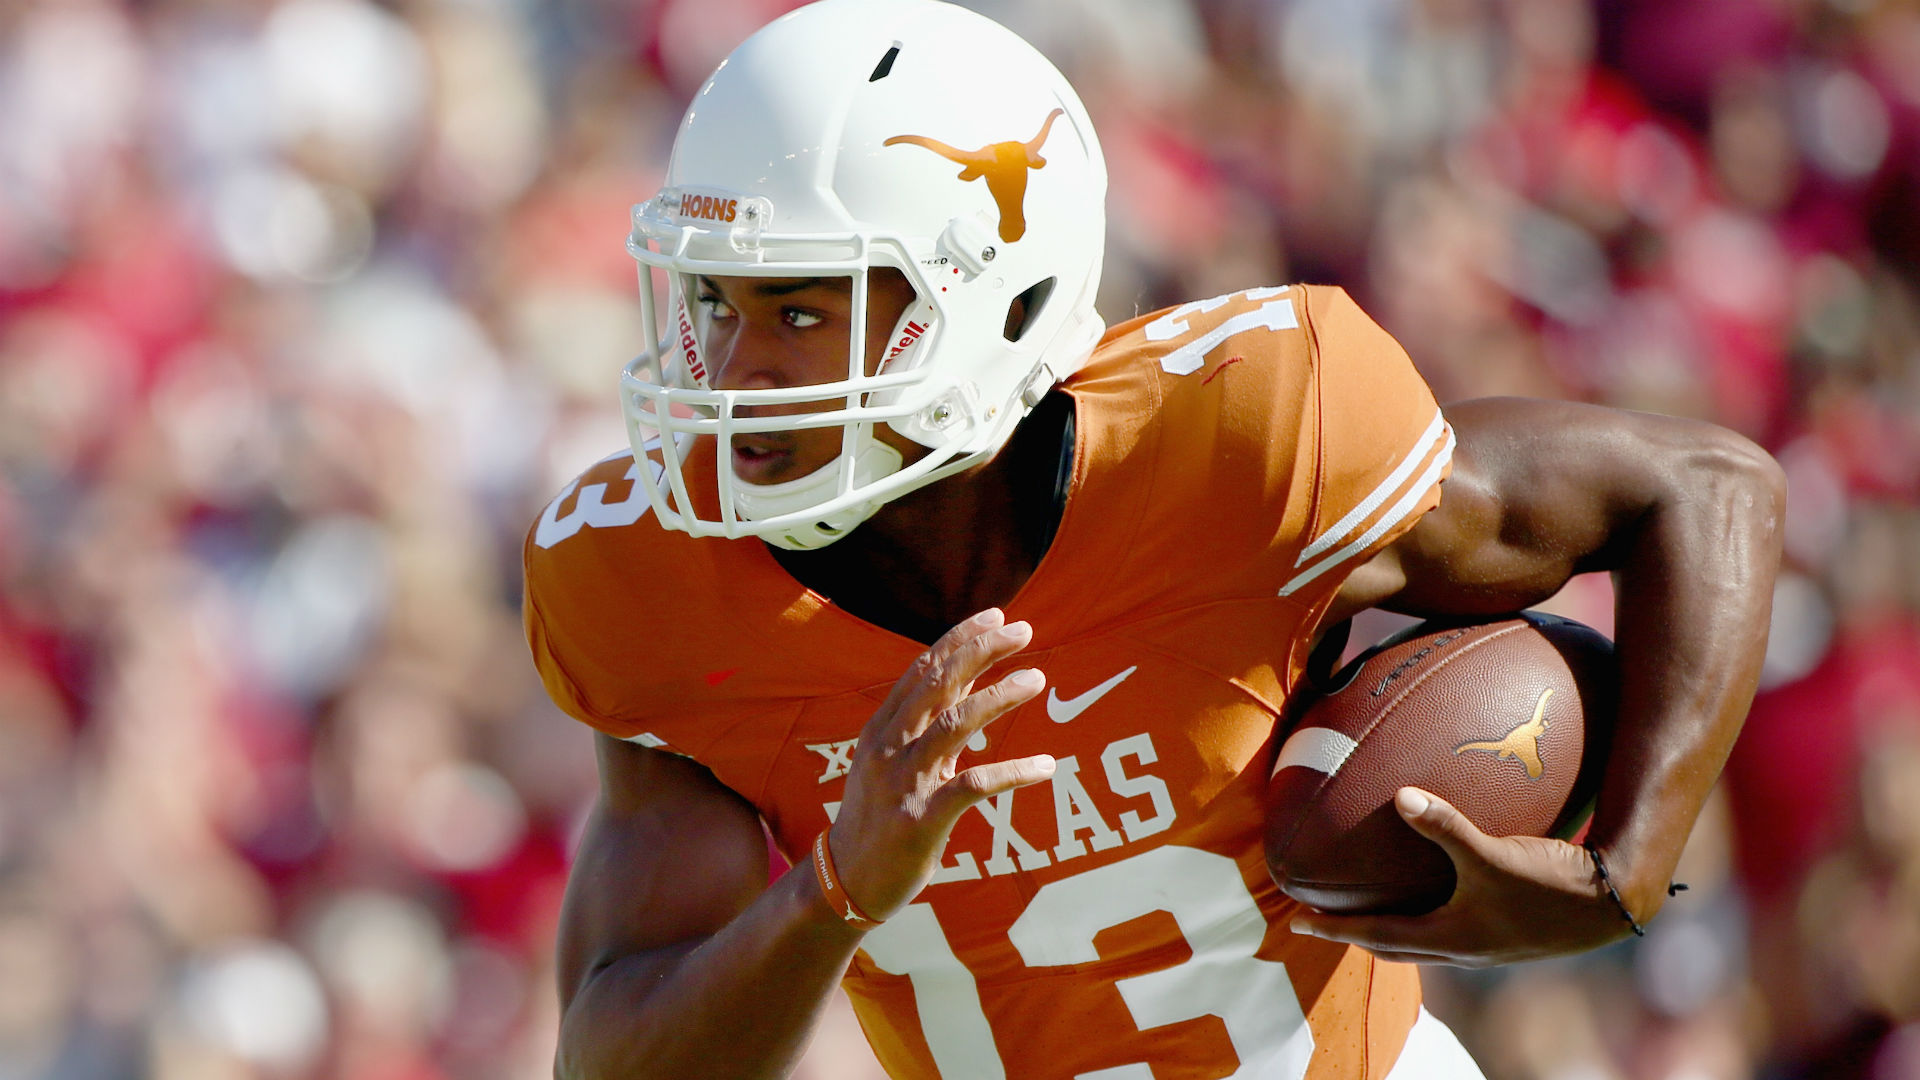 Texas Tech at Texas betting lines and pick — Nice price on Longhorns